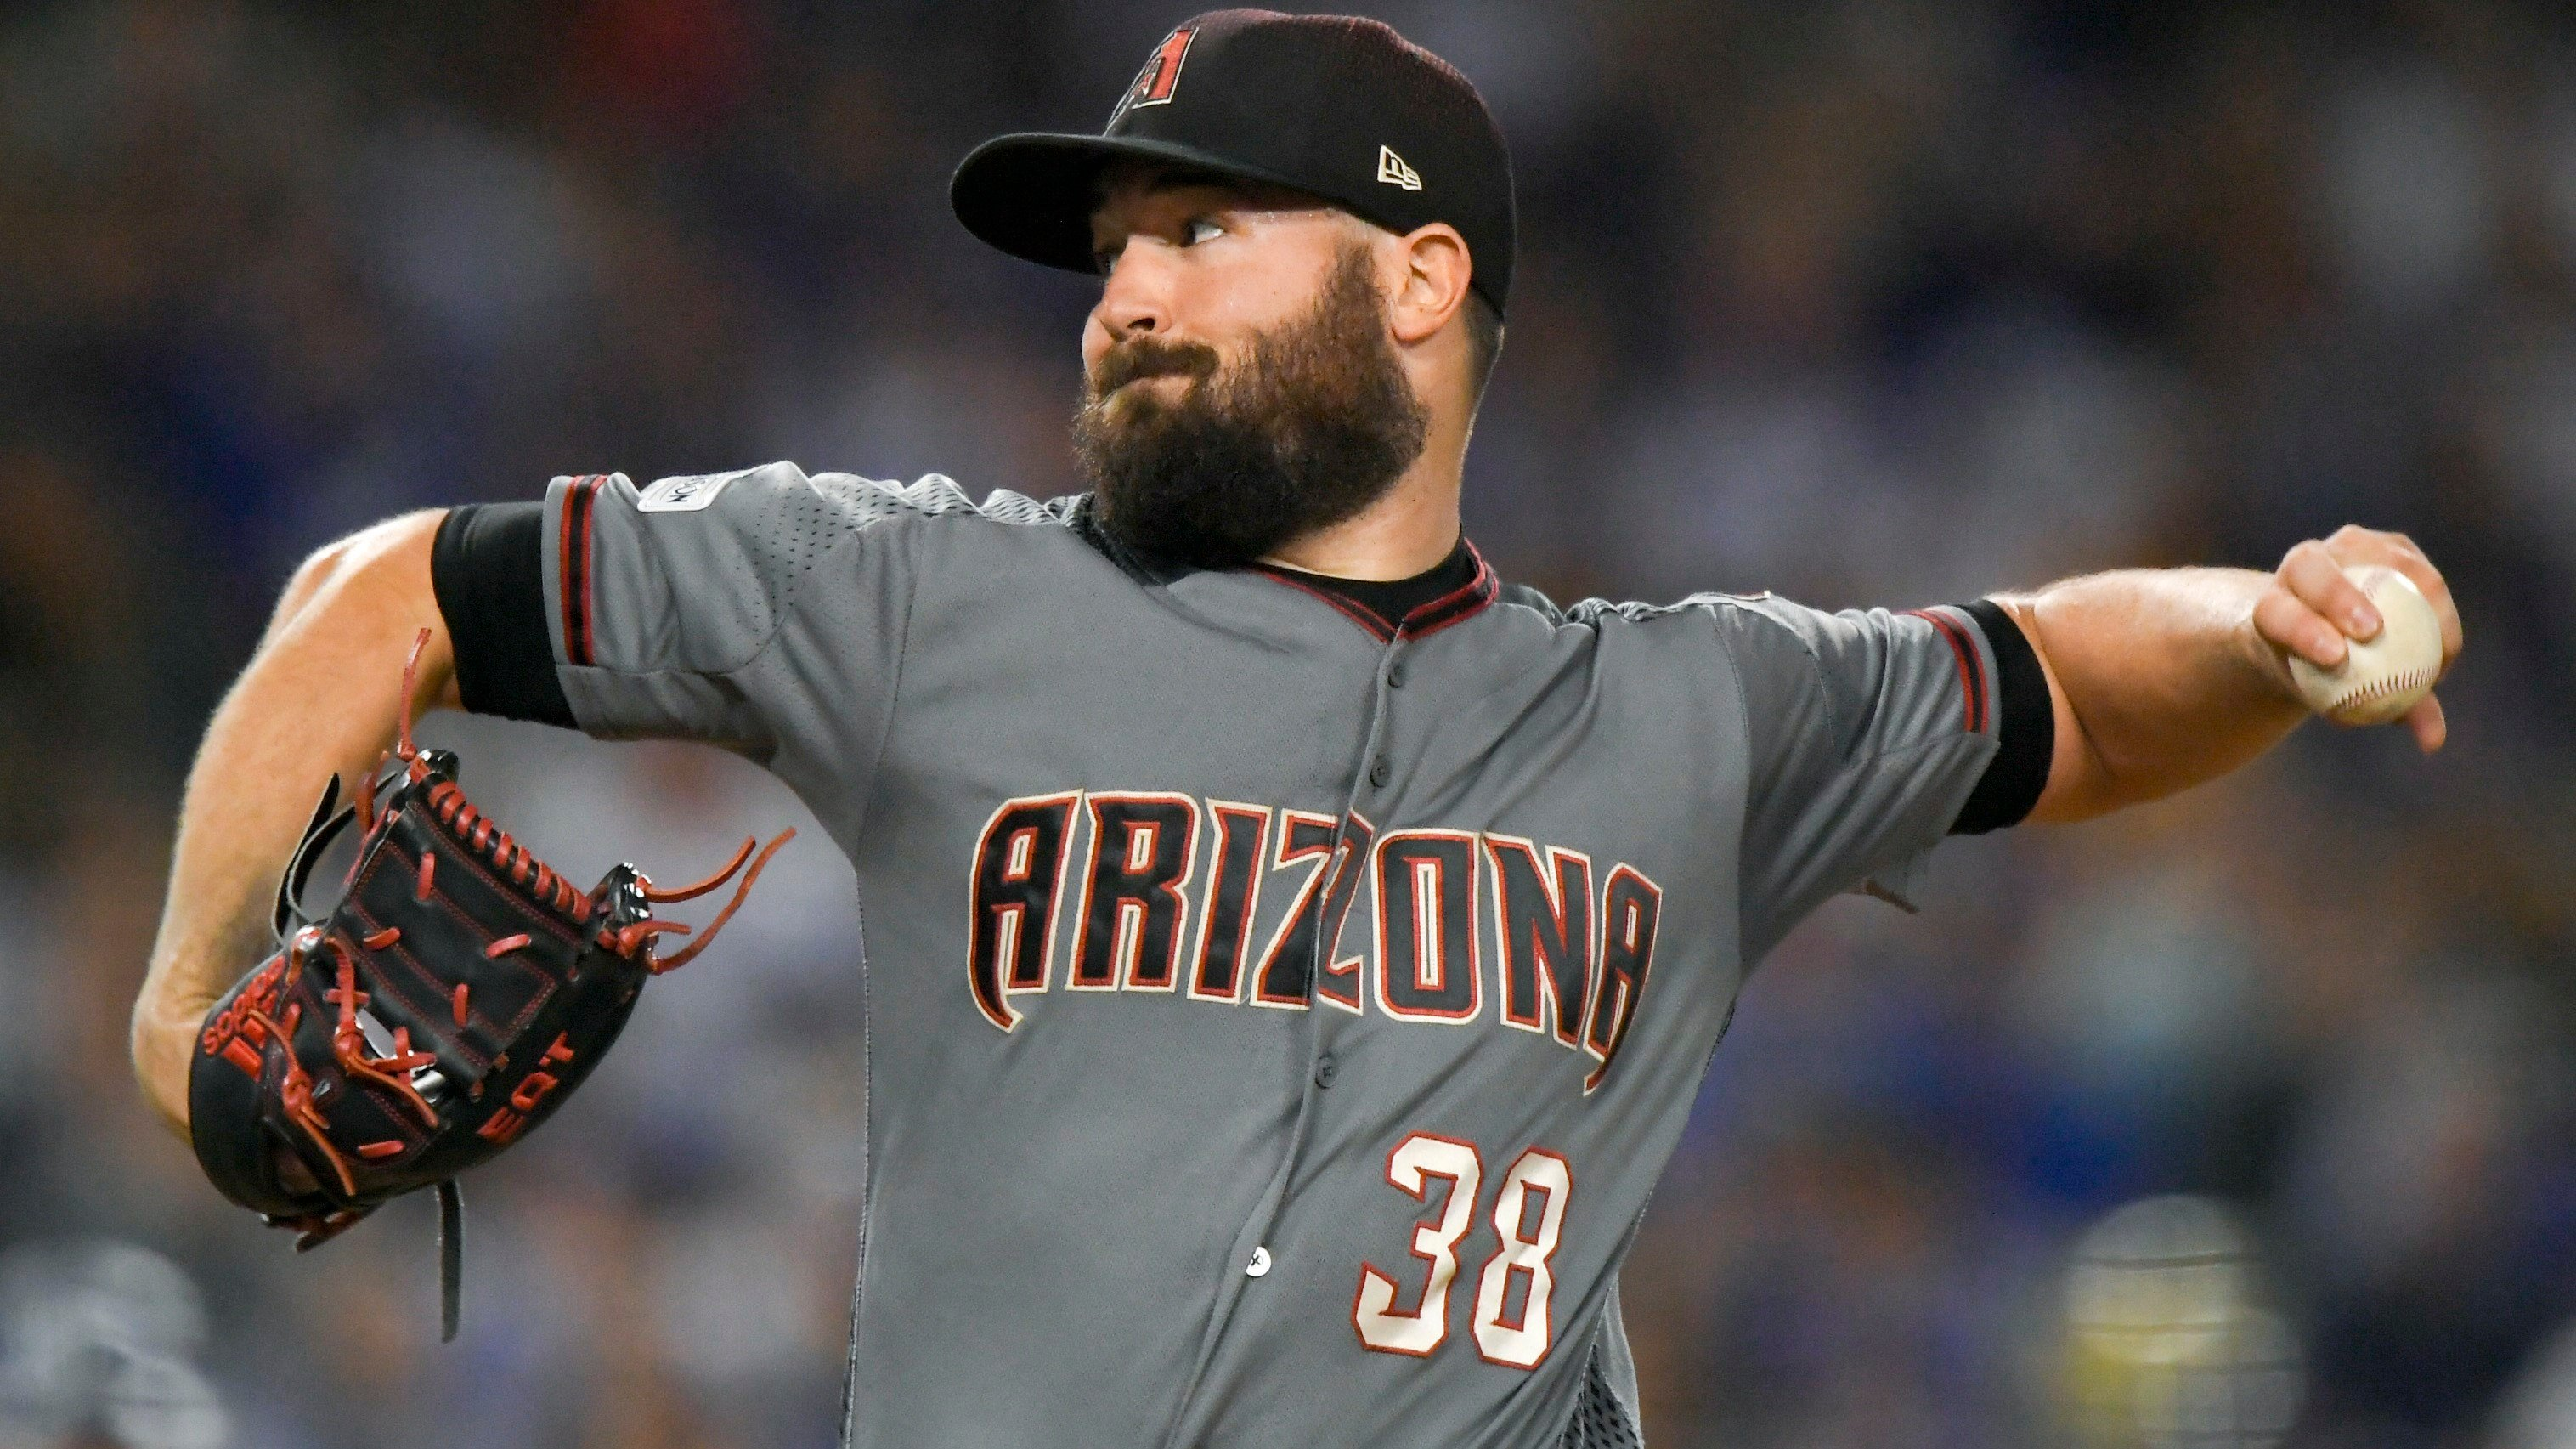 Arizona Diamondbacks starting pitcher Robbie Ray throws against the Los Angeles Dodgers during the second inning of Game 2 of baseball's National League Division Series in Los Angeles, Saturday, Oct. 7, 2017. (AP Photo/Mark J. Terrill)